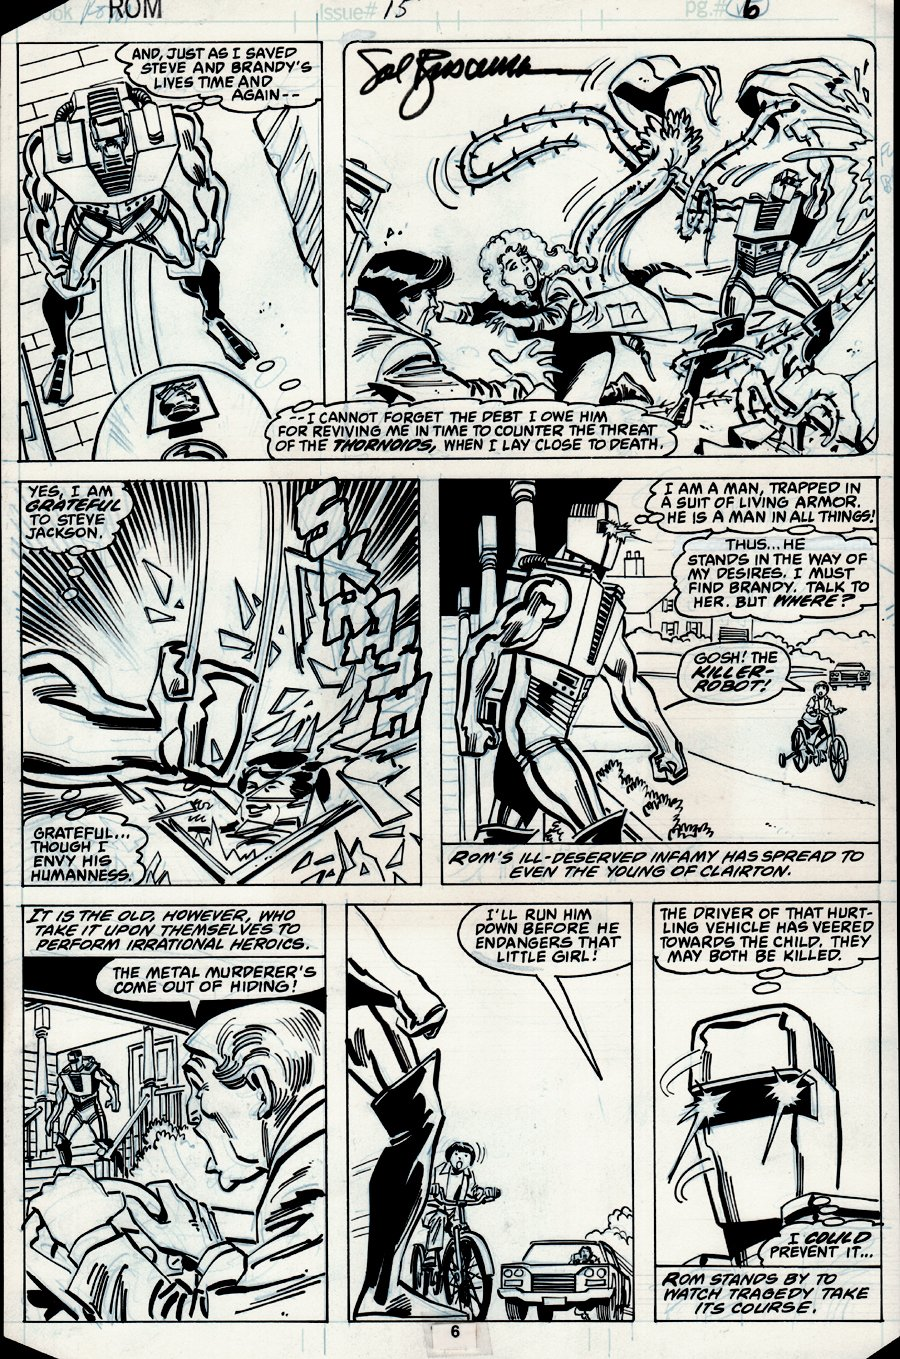 ROM #15 p 6 (ROM in EVERY PANEL!) 1980